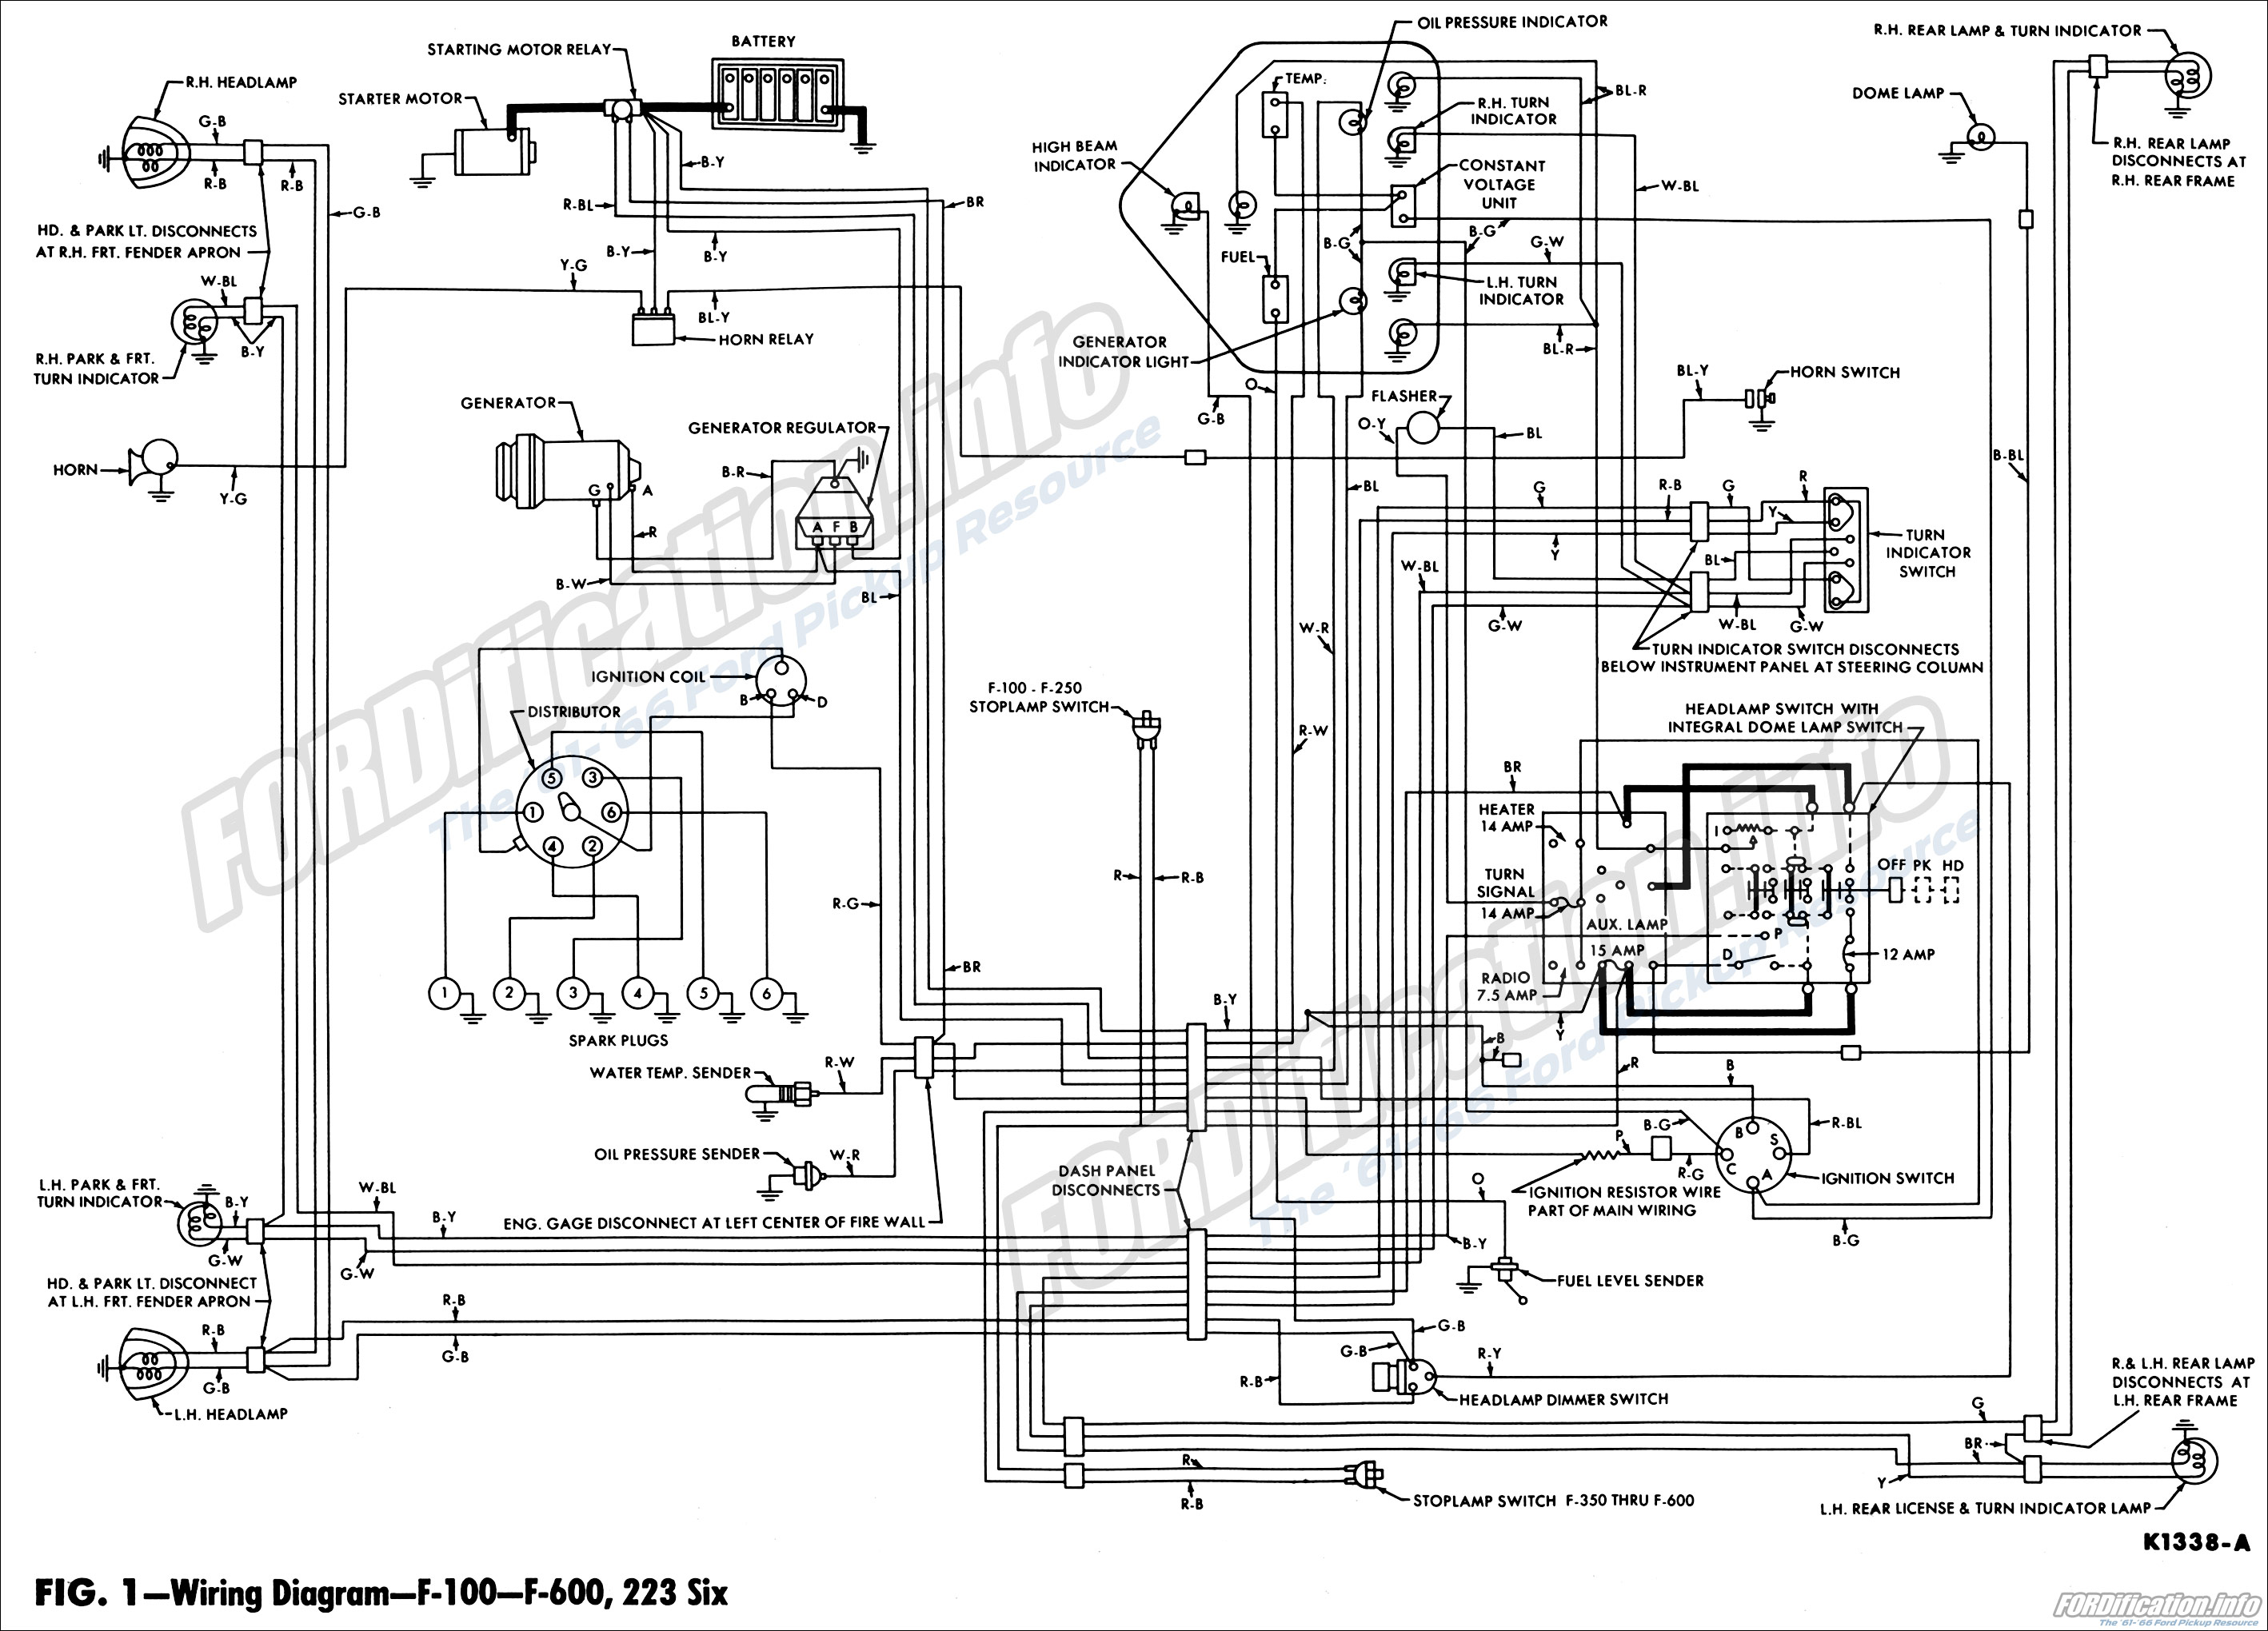 1962 F100 Wiring Diagram : 24 Wiring Diagram Images